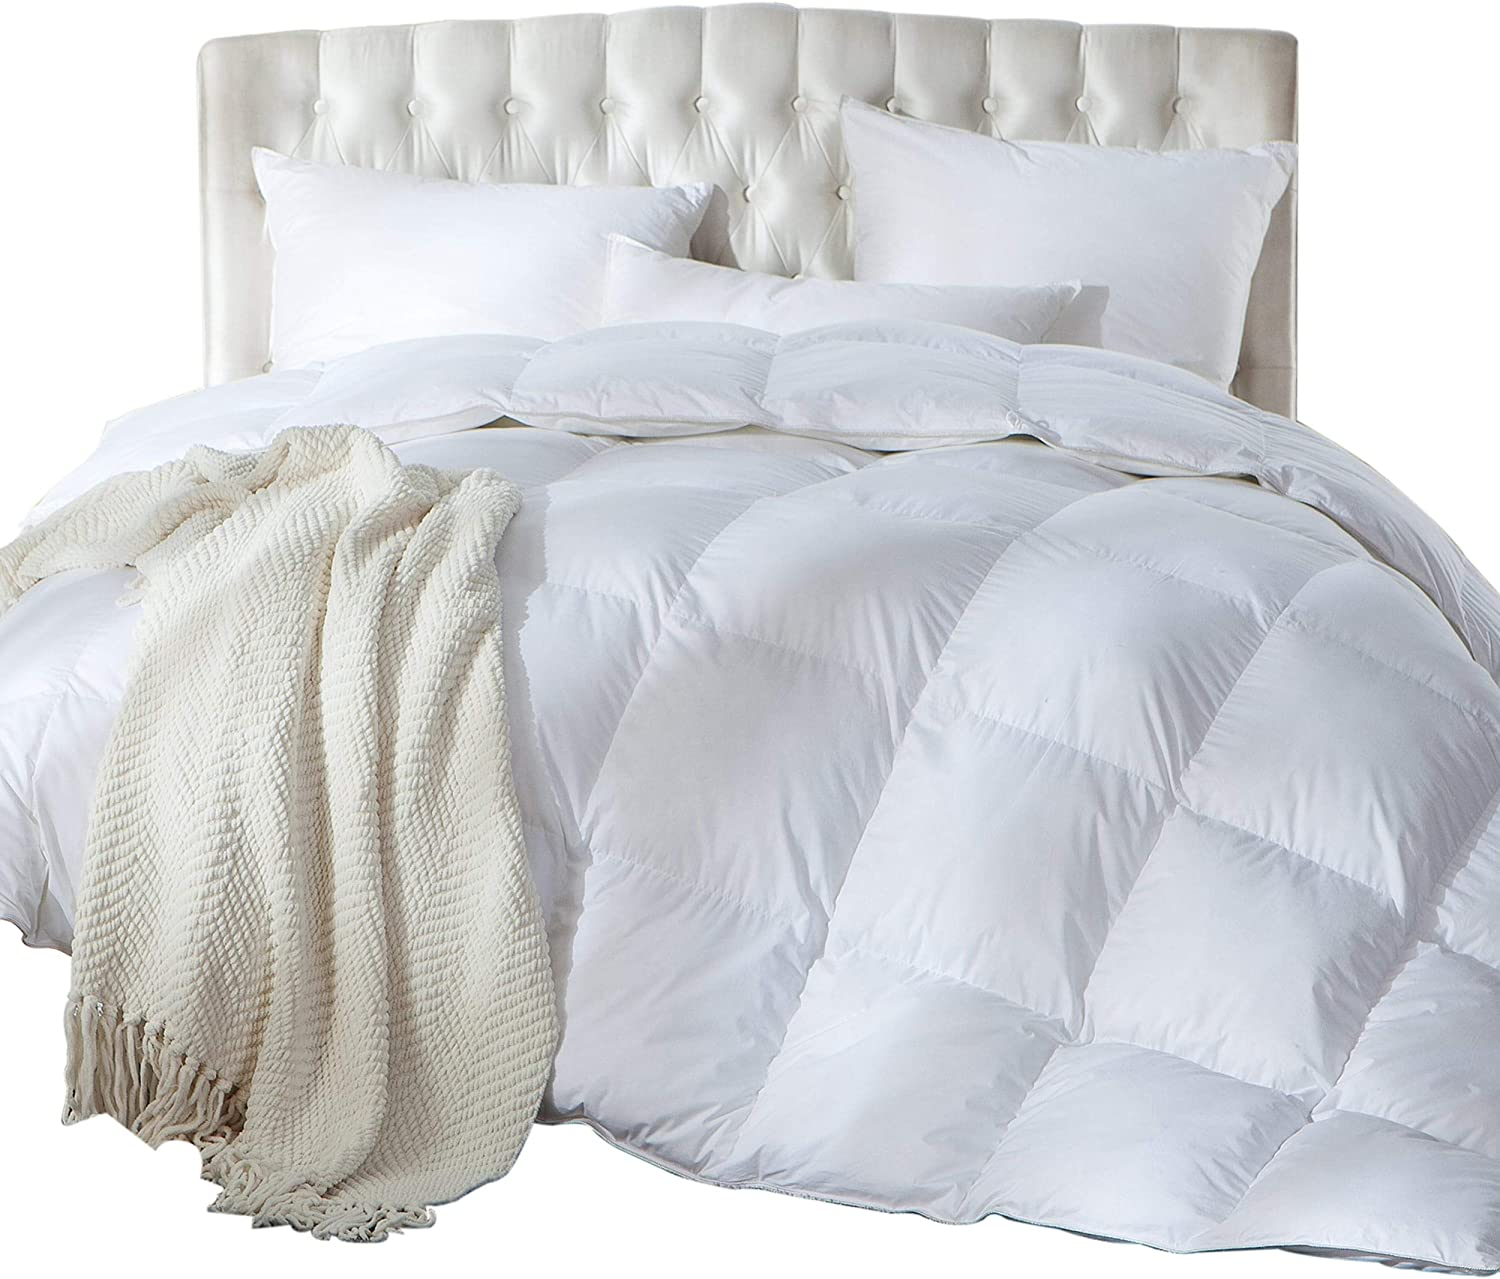 Luxurious King/California King Size Siberian Goose Down Comforter, Duvet Insert, 1200 Thread Count 100% Egyptian Cotton, 750+ Fill Power, 70 oz Fill Weight, 1200TC, White Solid: Home & Kitchen